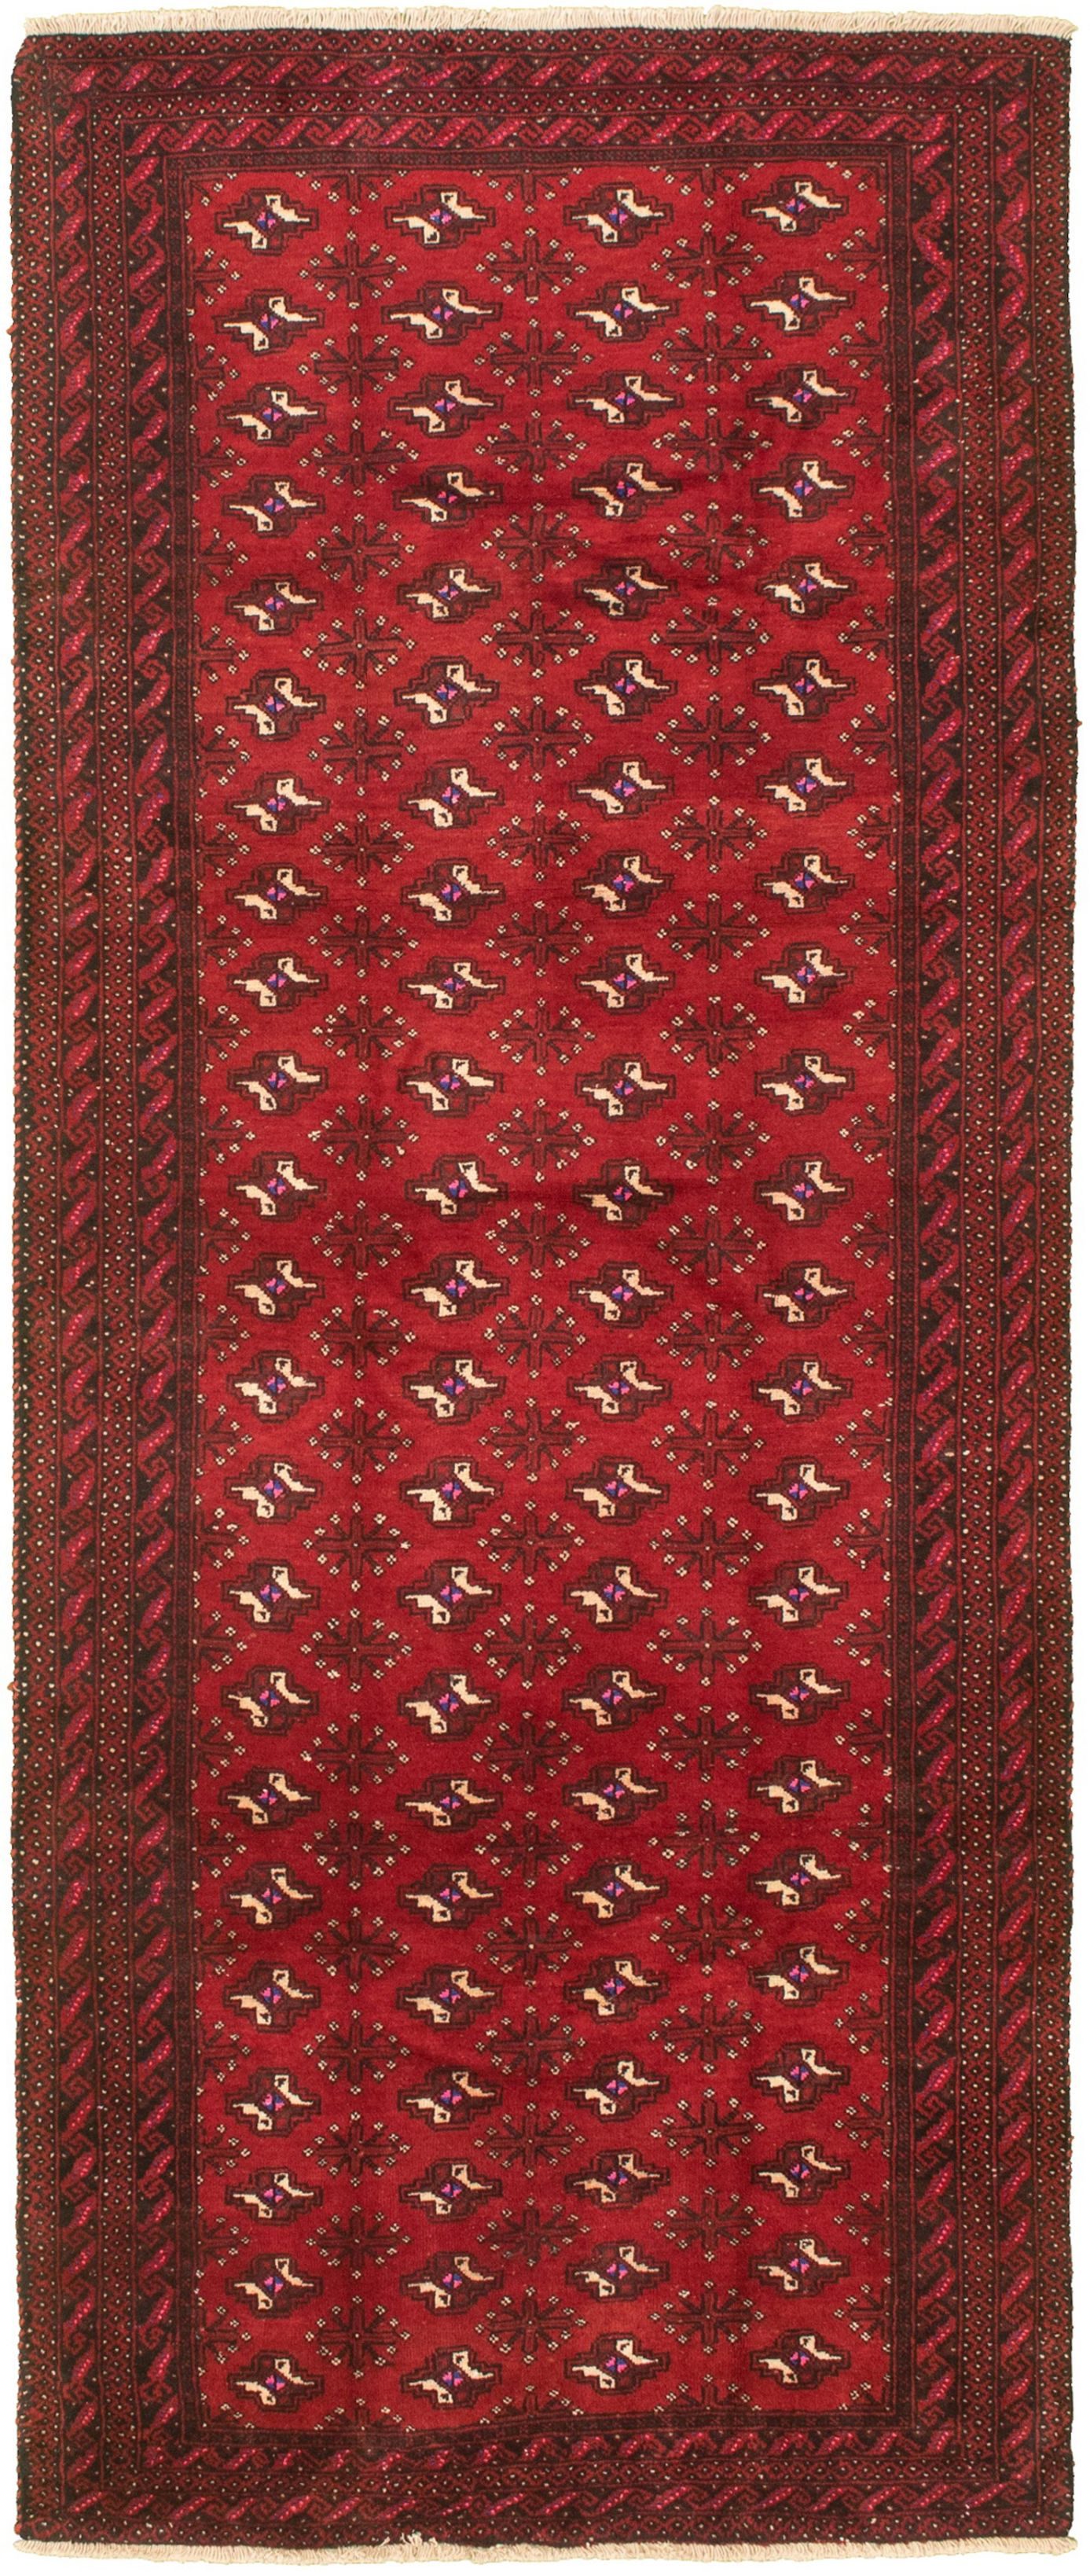 """Hand-knotted Authentic Turkish Dark Copper Wool Rug 3'9"""" x 9'8"""" Size: 3'9"""" x 9'8"""""""